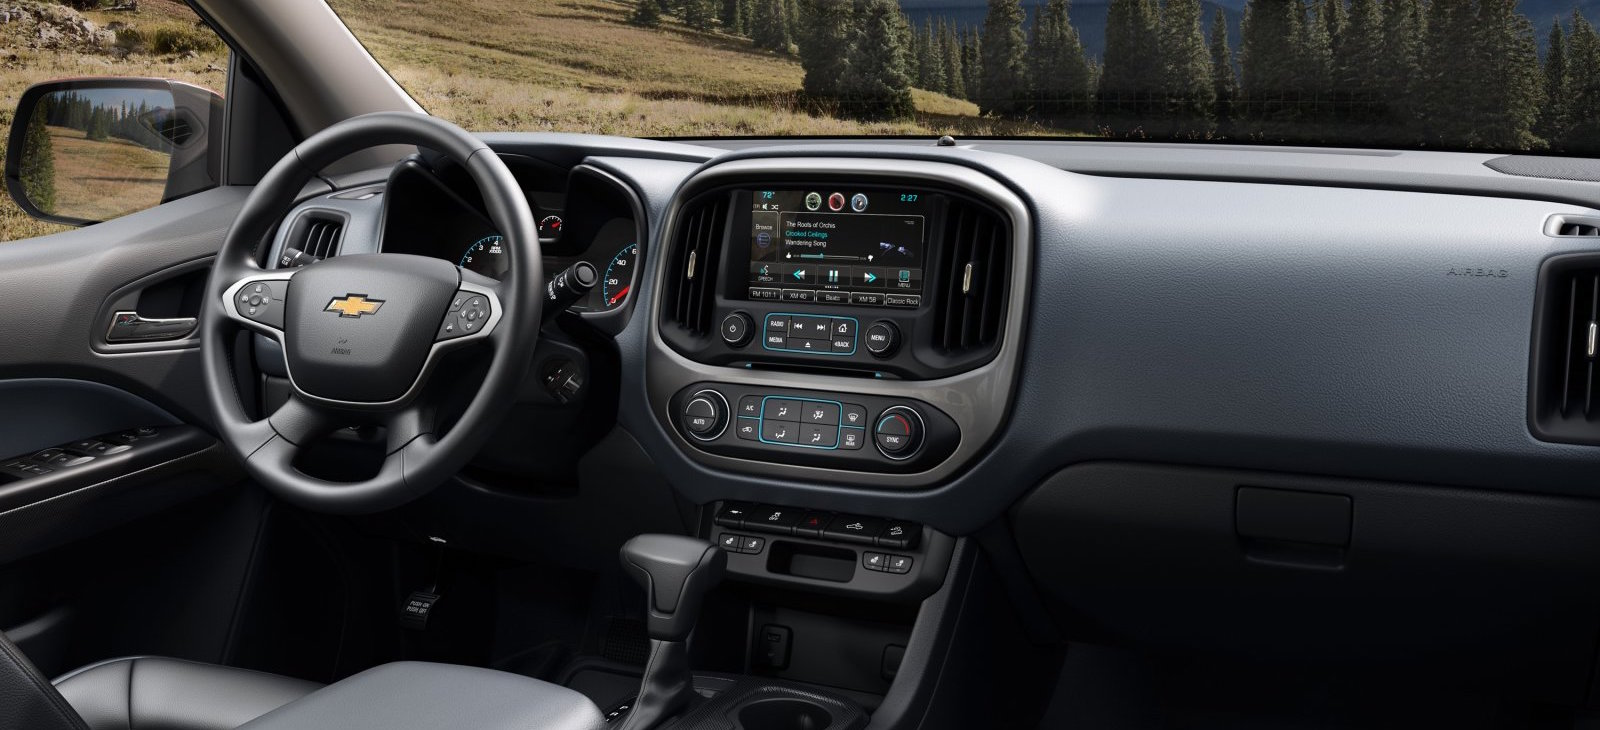 2017 Chevy Colorado Technology